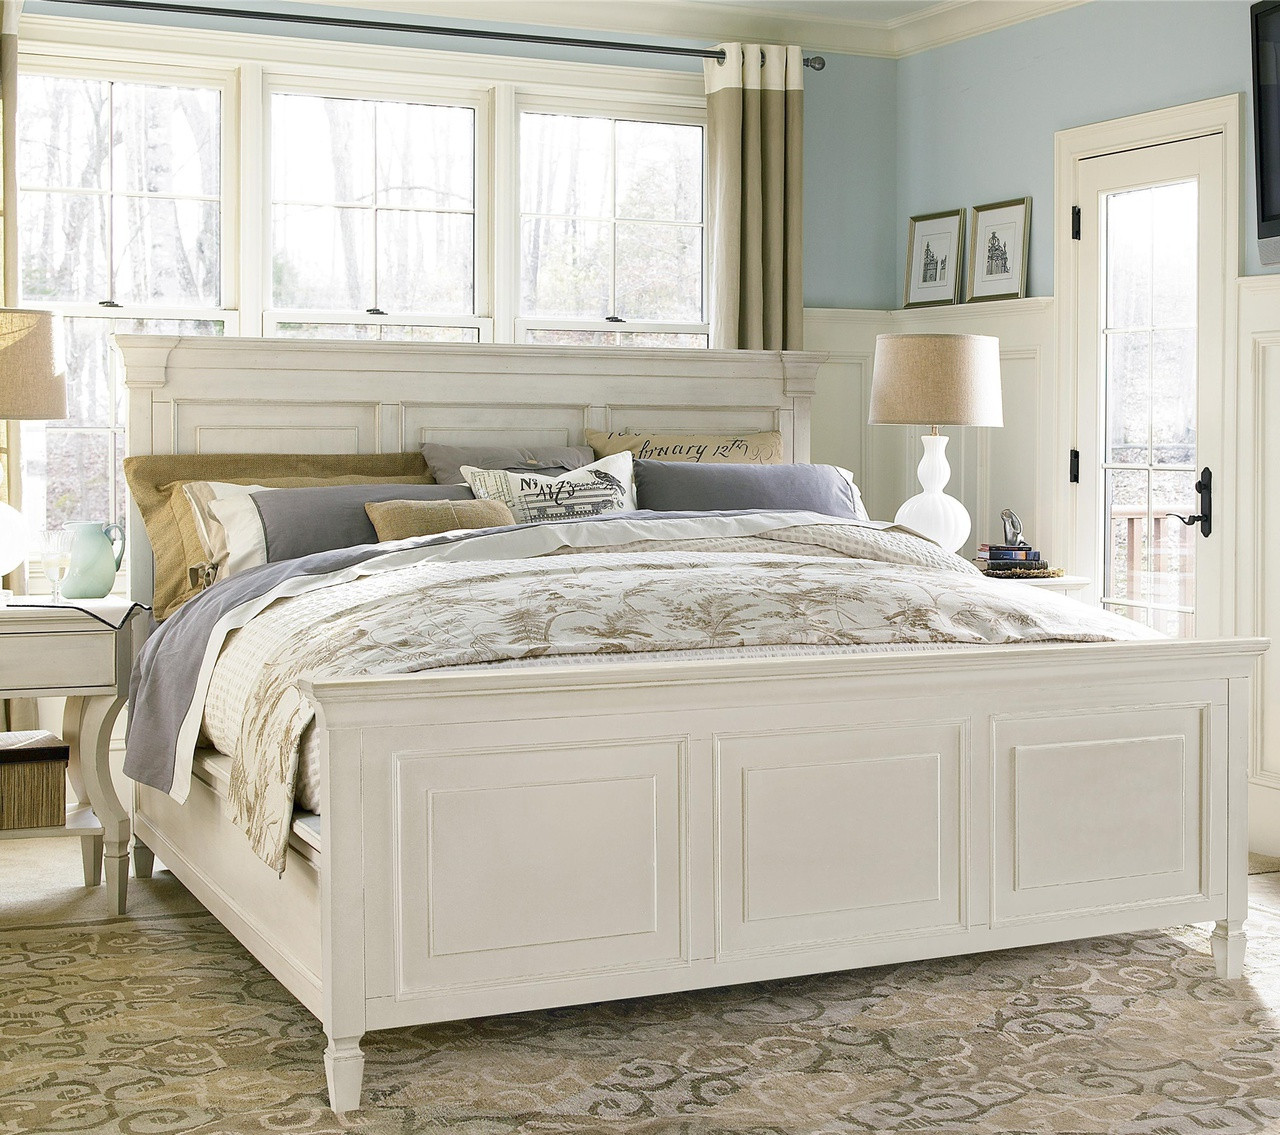 Modest Queen Size Bed Frame Model